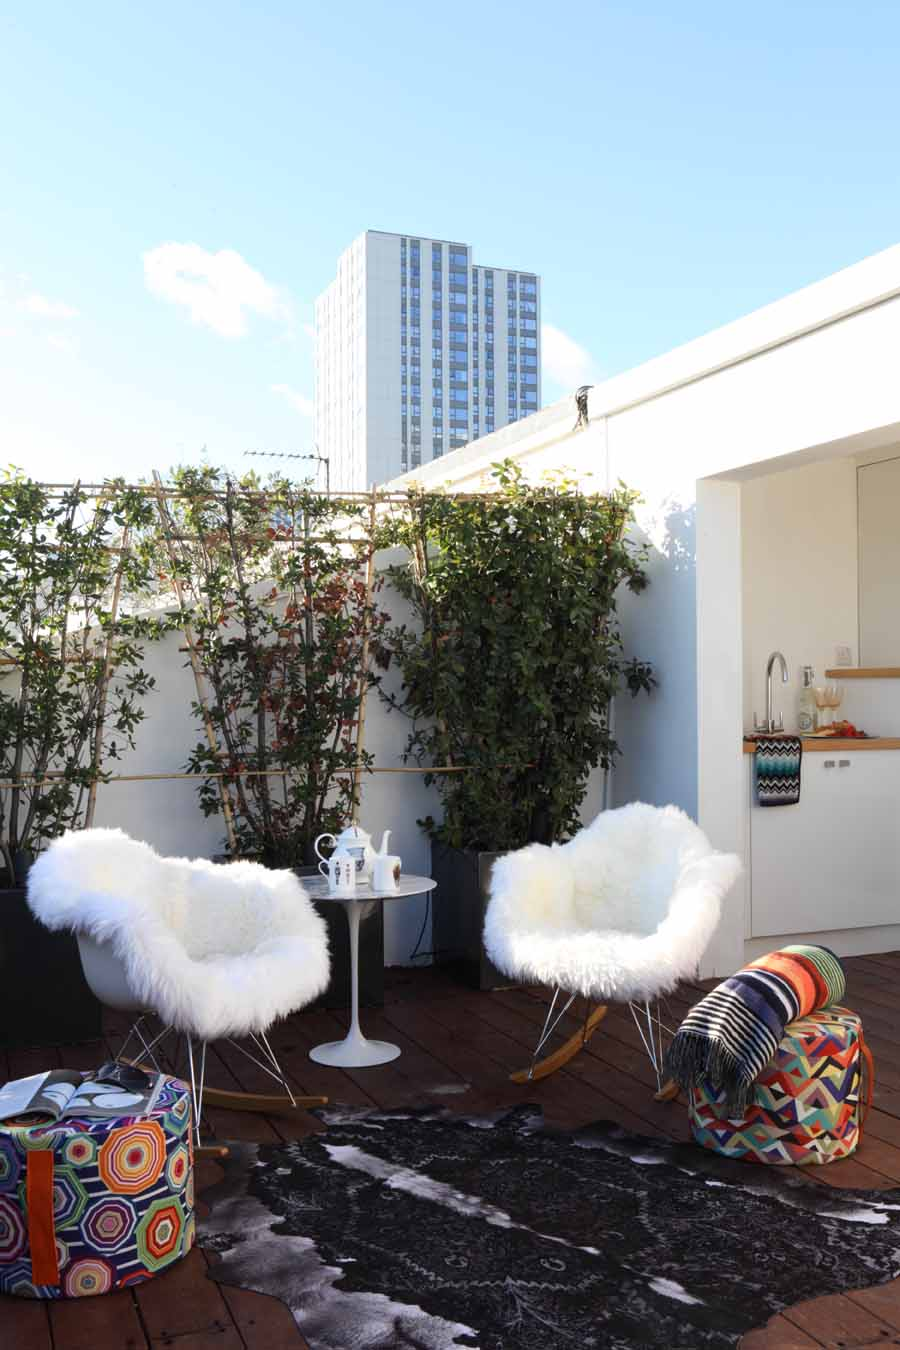 AJ_400_270 roof terrace and kitchenette with missoni cubes.jpg